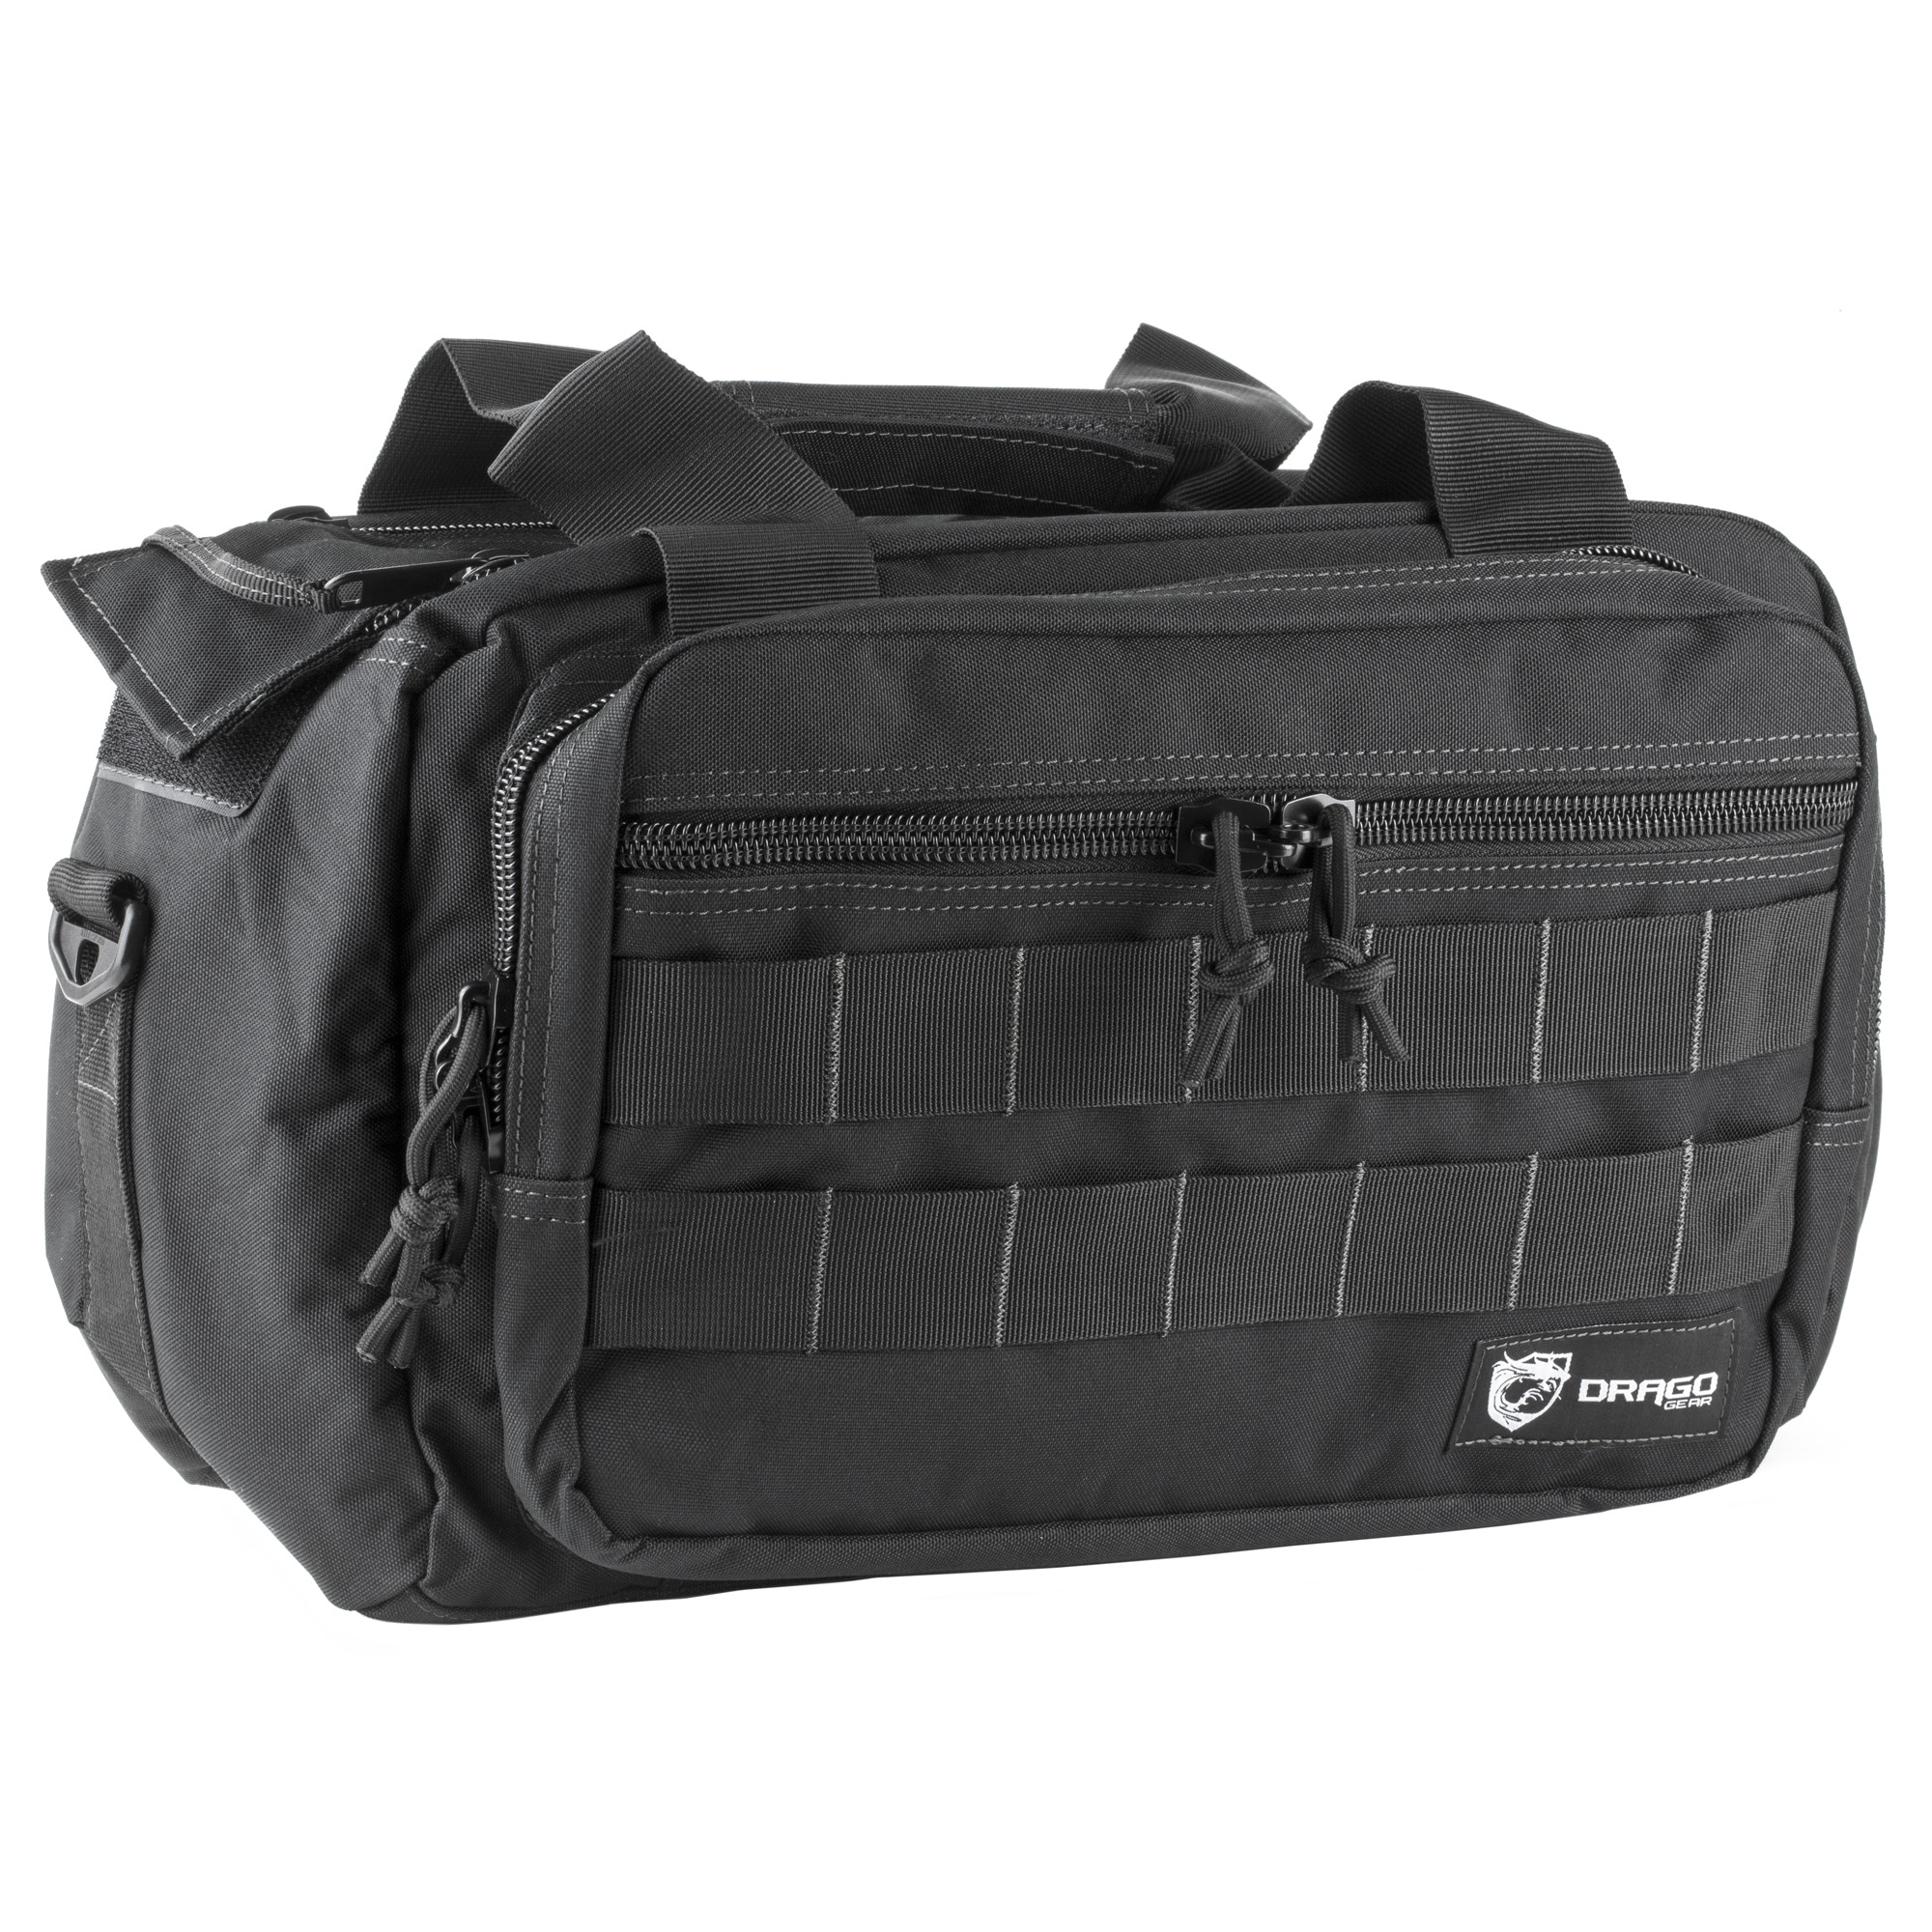 """This range bag is perfect for carrying multiple pistols"""" ammo"""" and shooting accessories. It features internal compartments for hearing and eye protection. MOLLE webbing allows attachment of load-bearing equipment."""